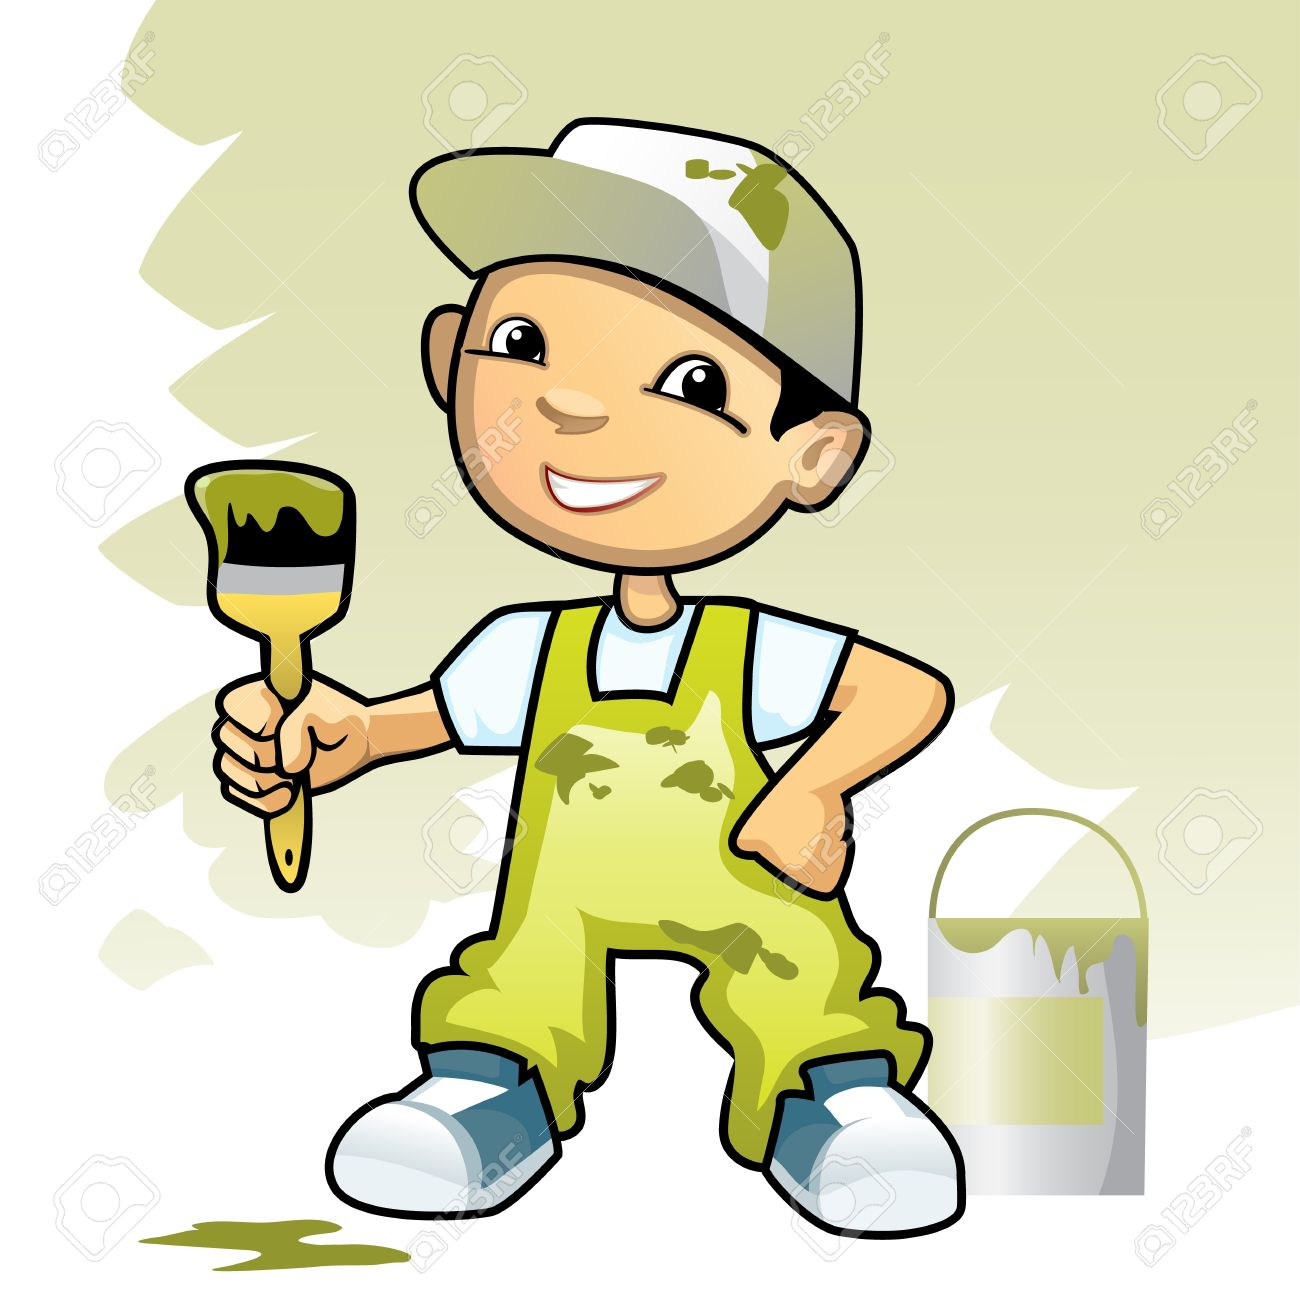 Painting and decorating clipart 4 » Clipart Station.